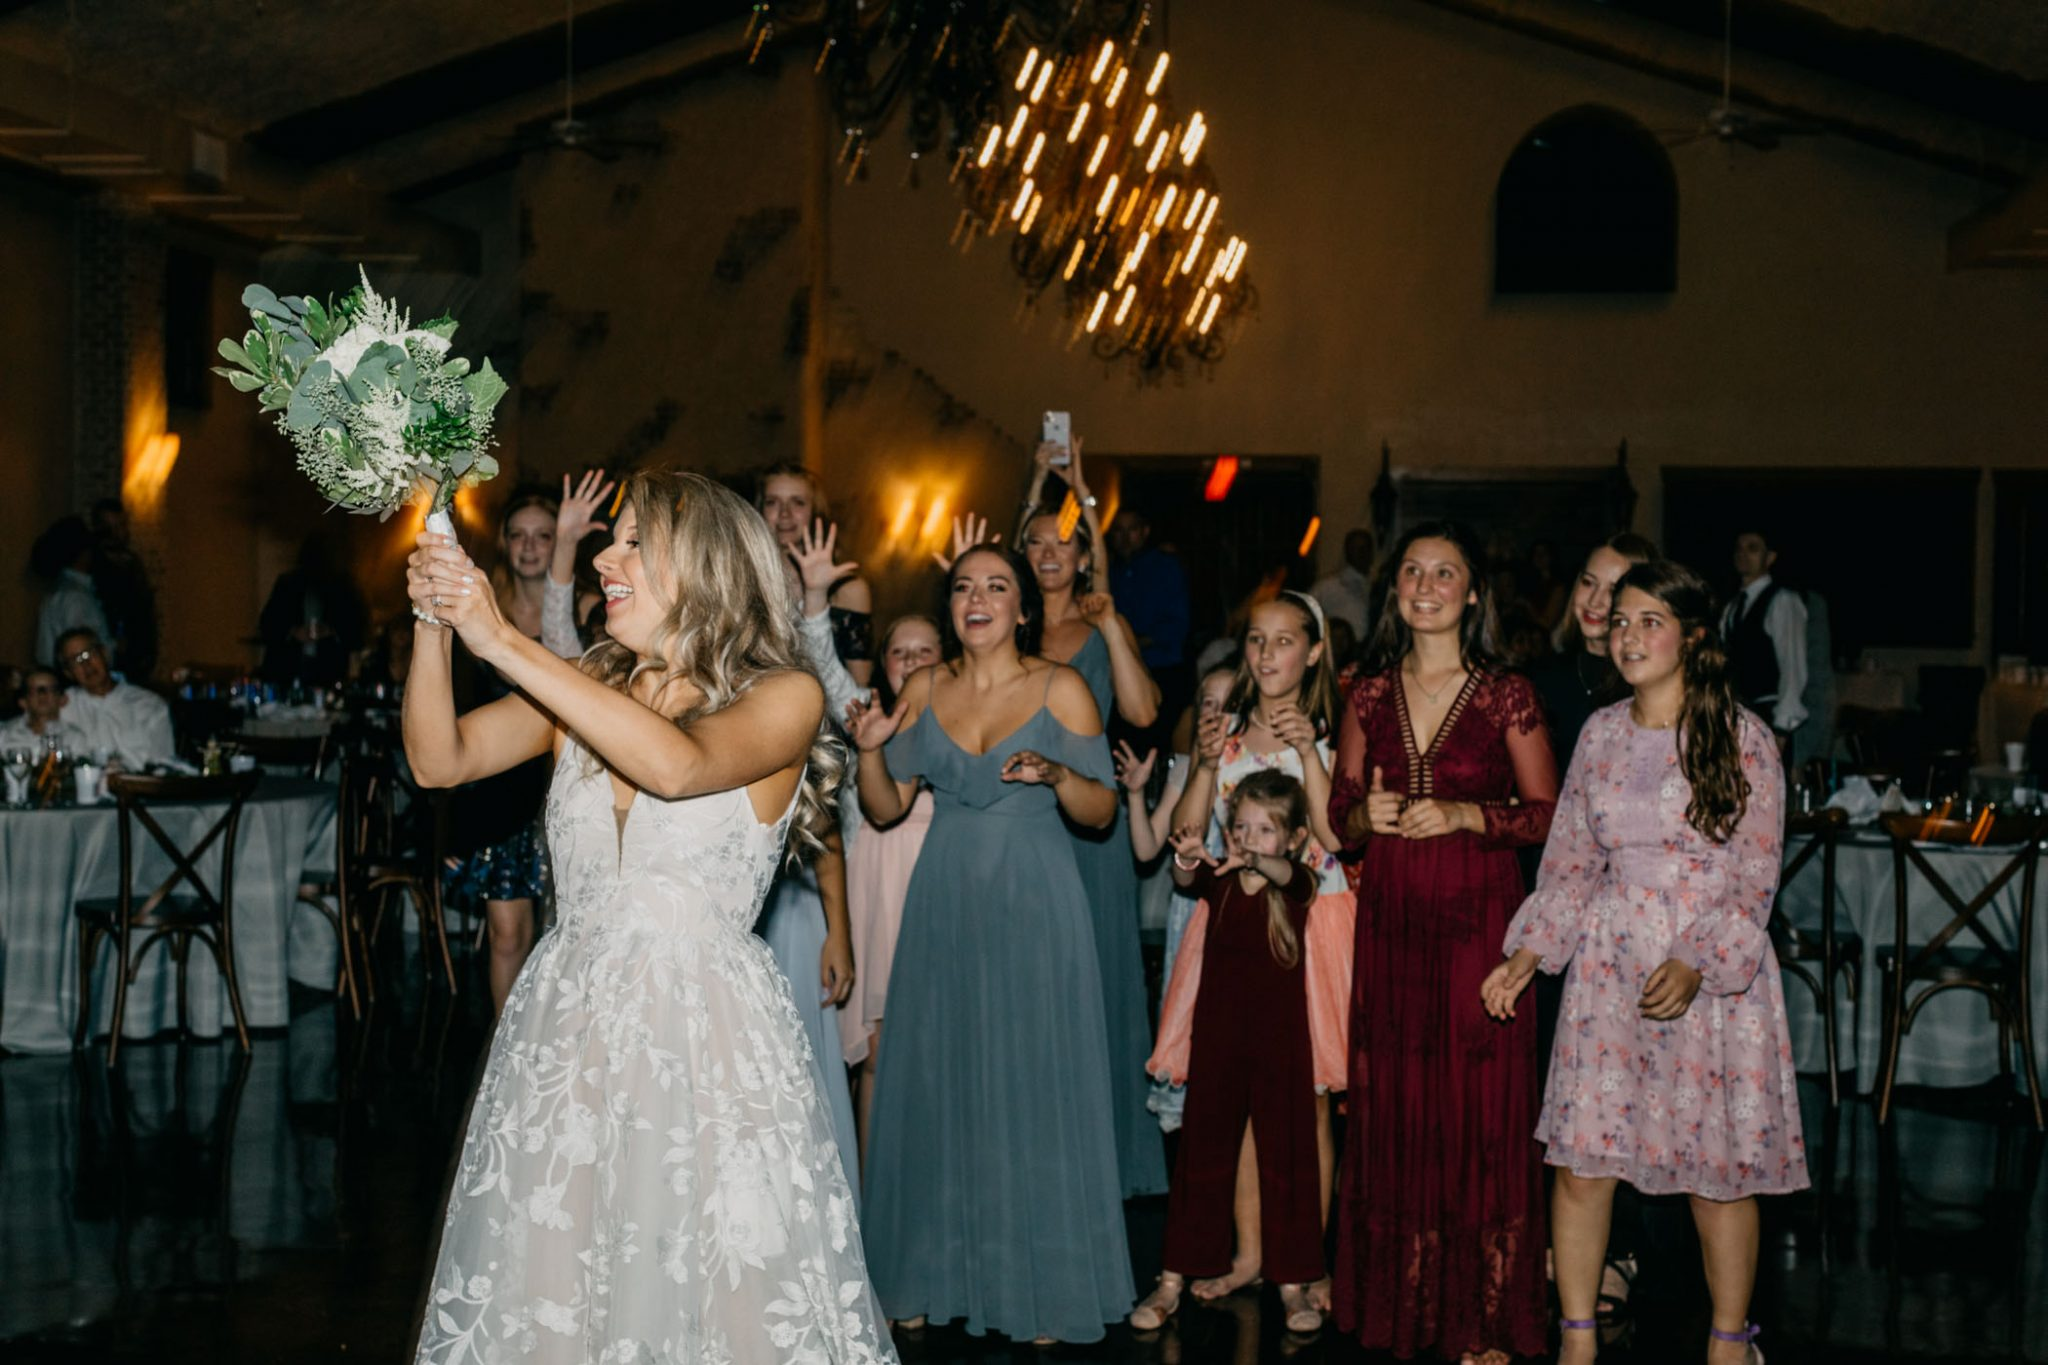 bride throwing bouquet after wedding ceremony